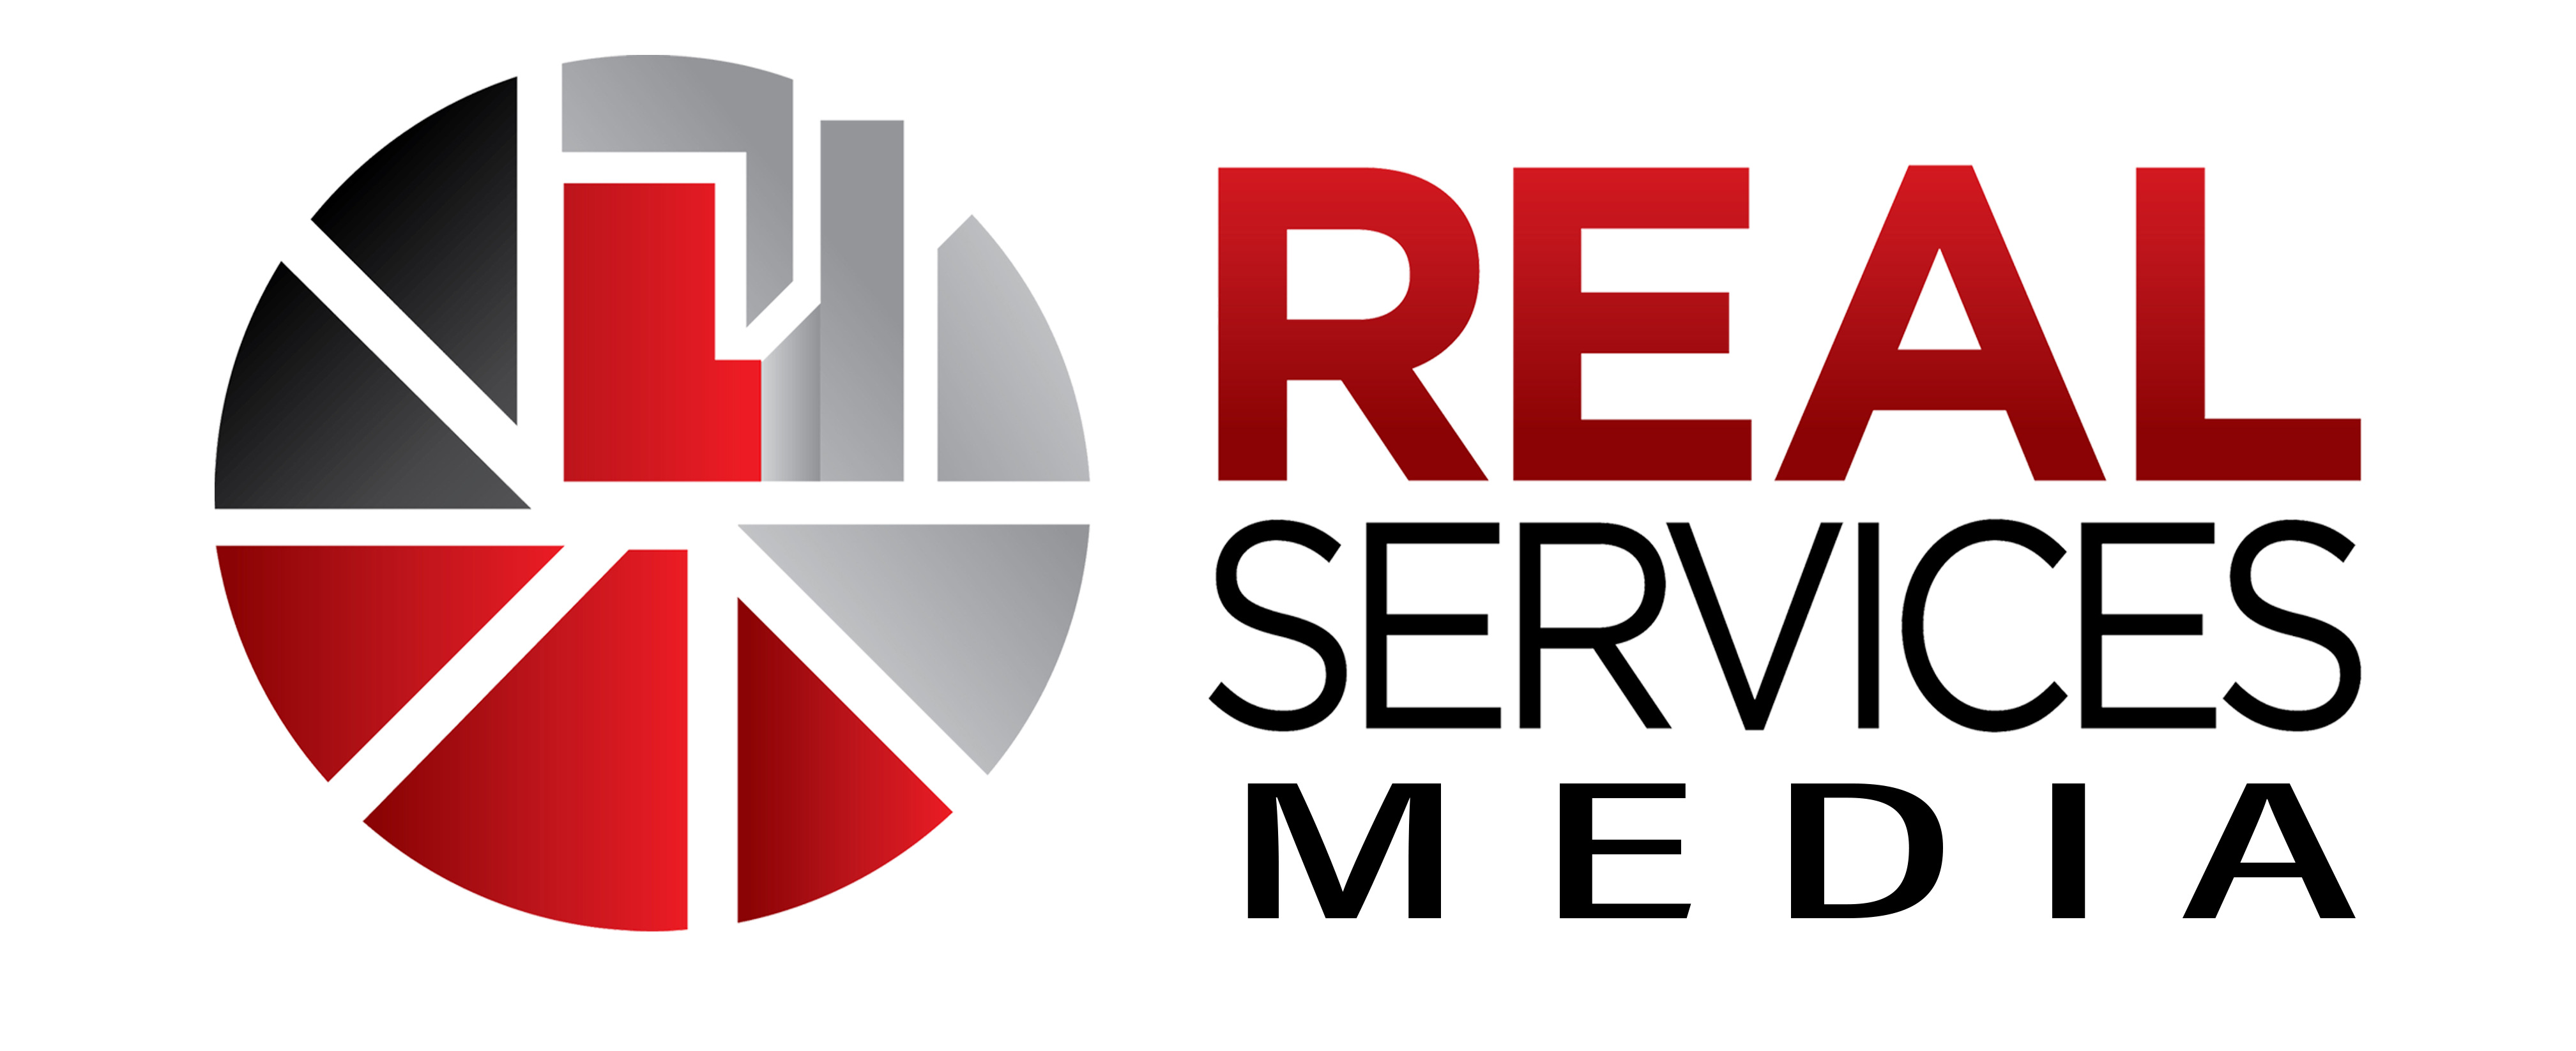 Real Services Media